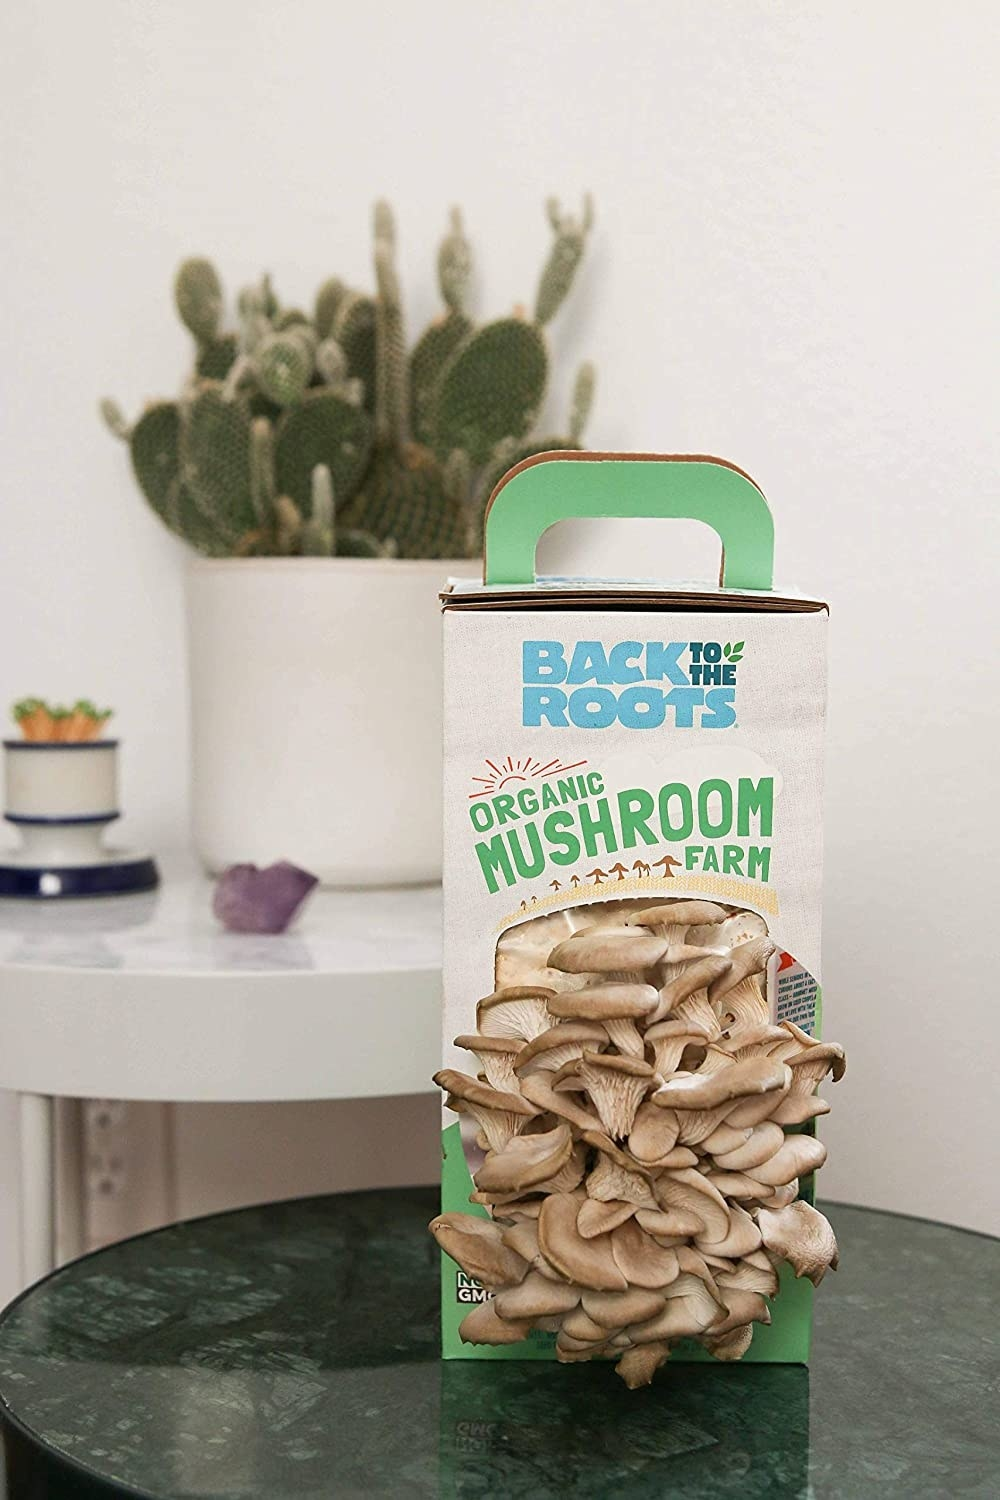 The kit with dozens of mushrooms growing